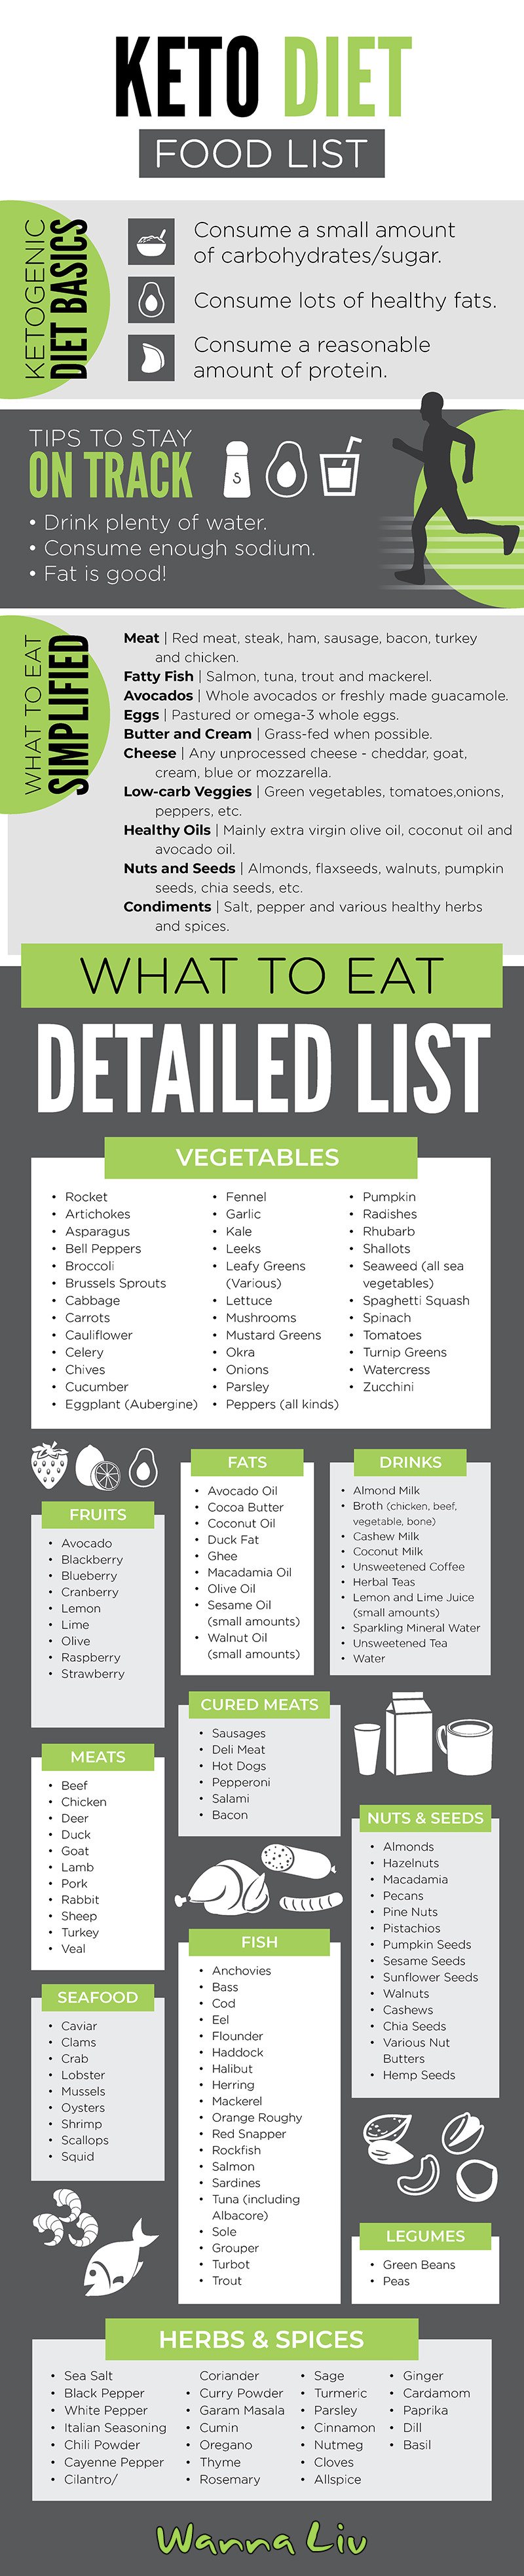 An infographic that features the Ketogenic Diet basics, tips to stay on track, a simplified and detailed Keto food list